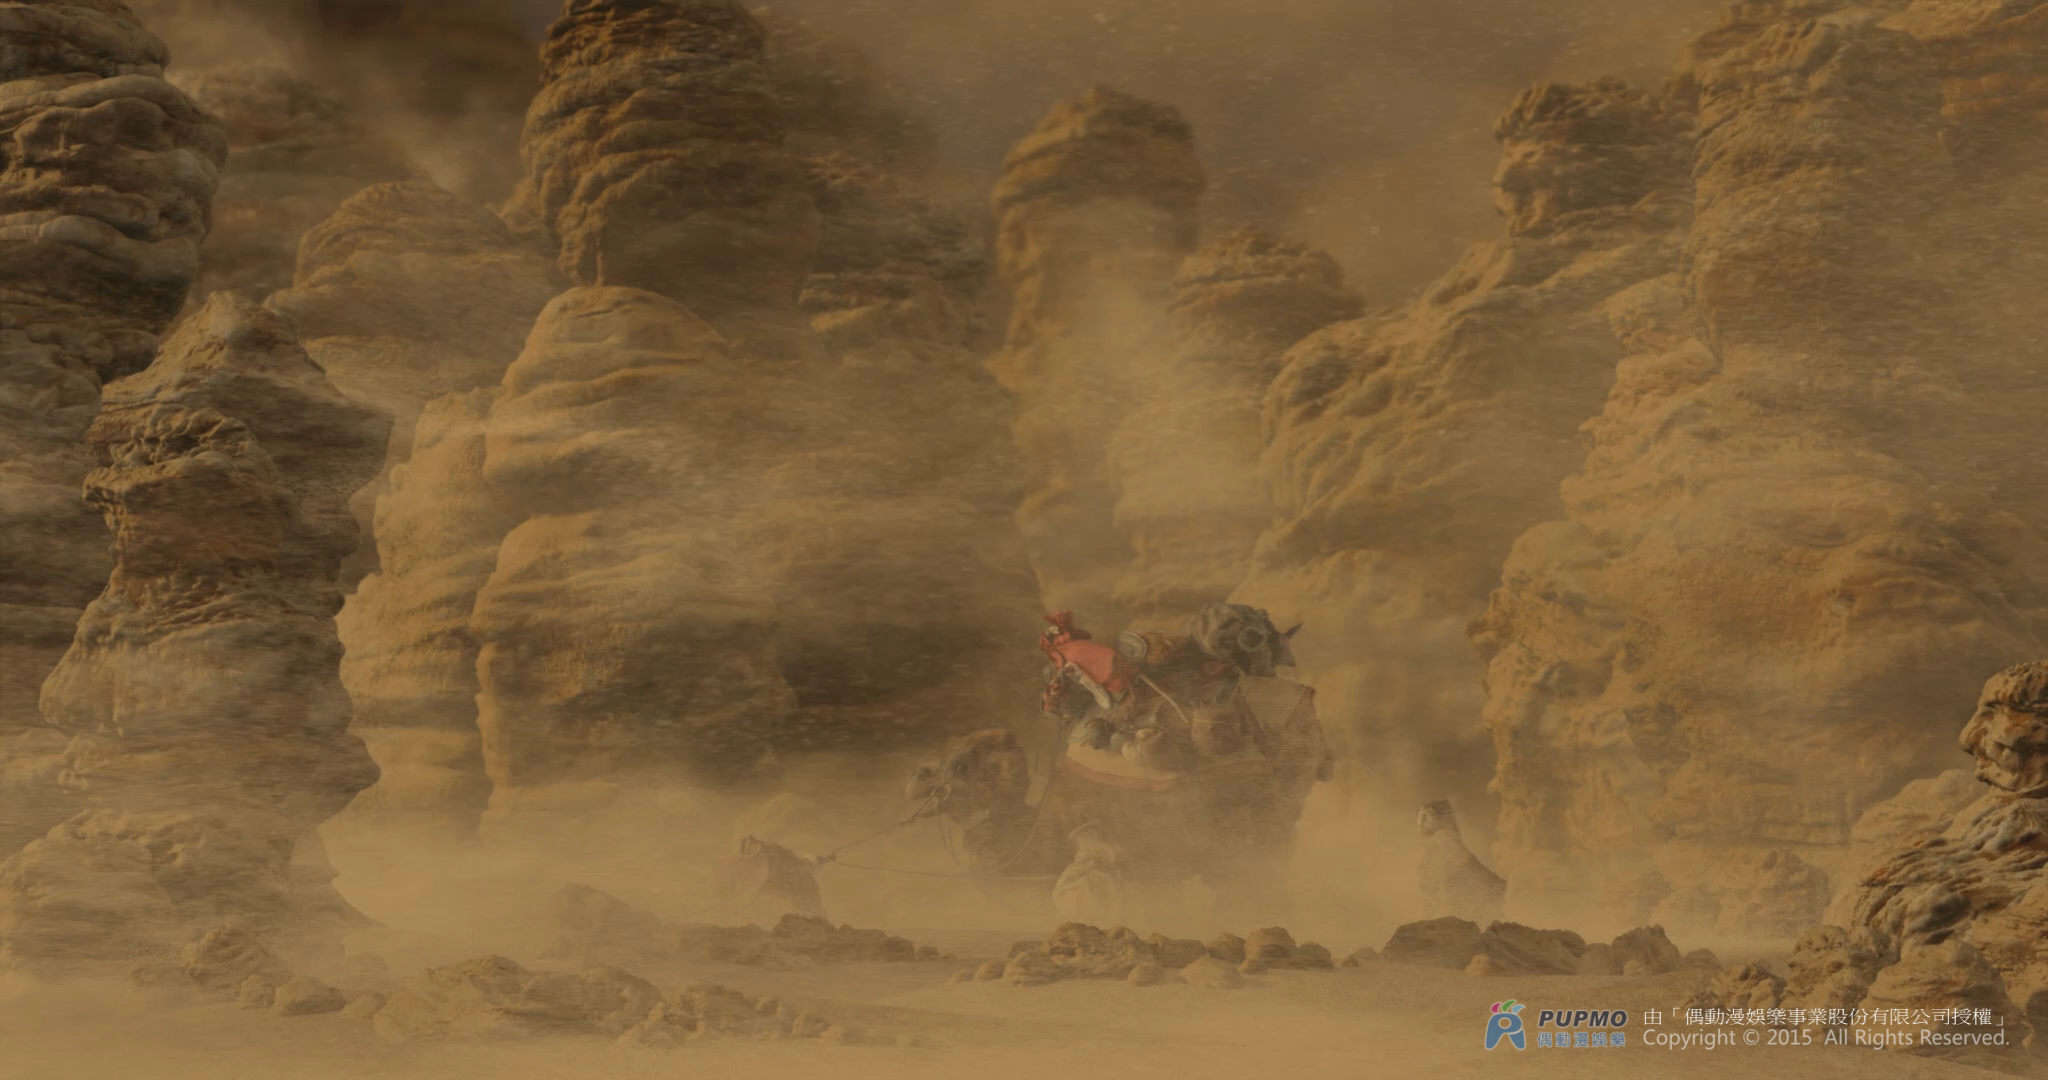 Movie - The Arti : The Adventure Begins - CGI & VFX : scene and sandstorm effect. Click to view large image.